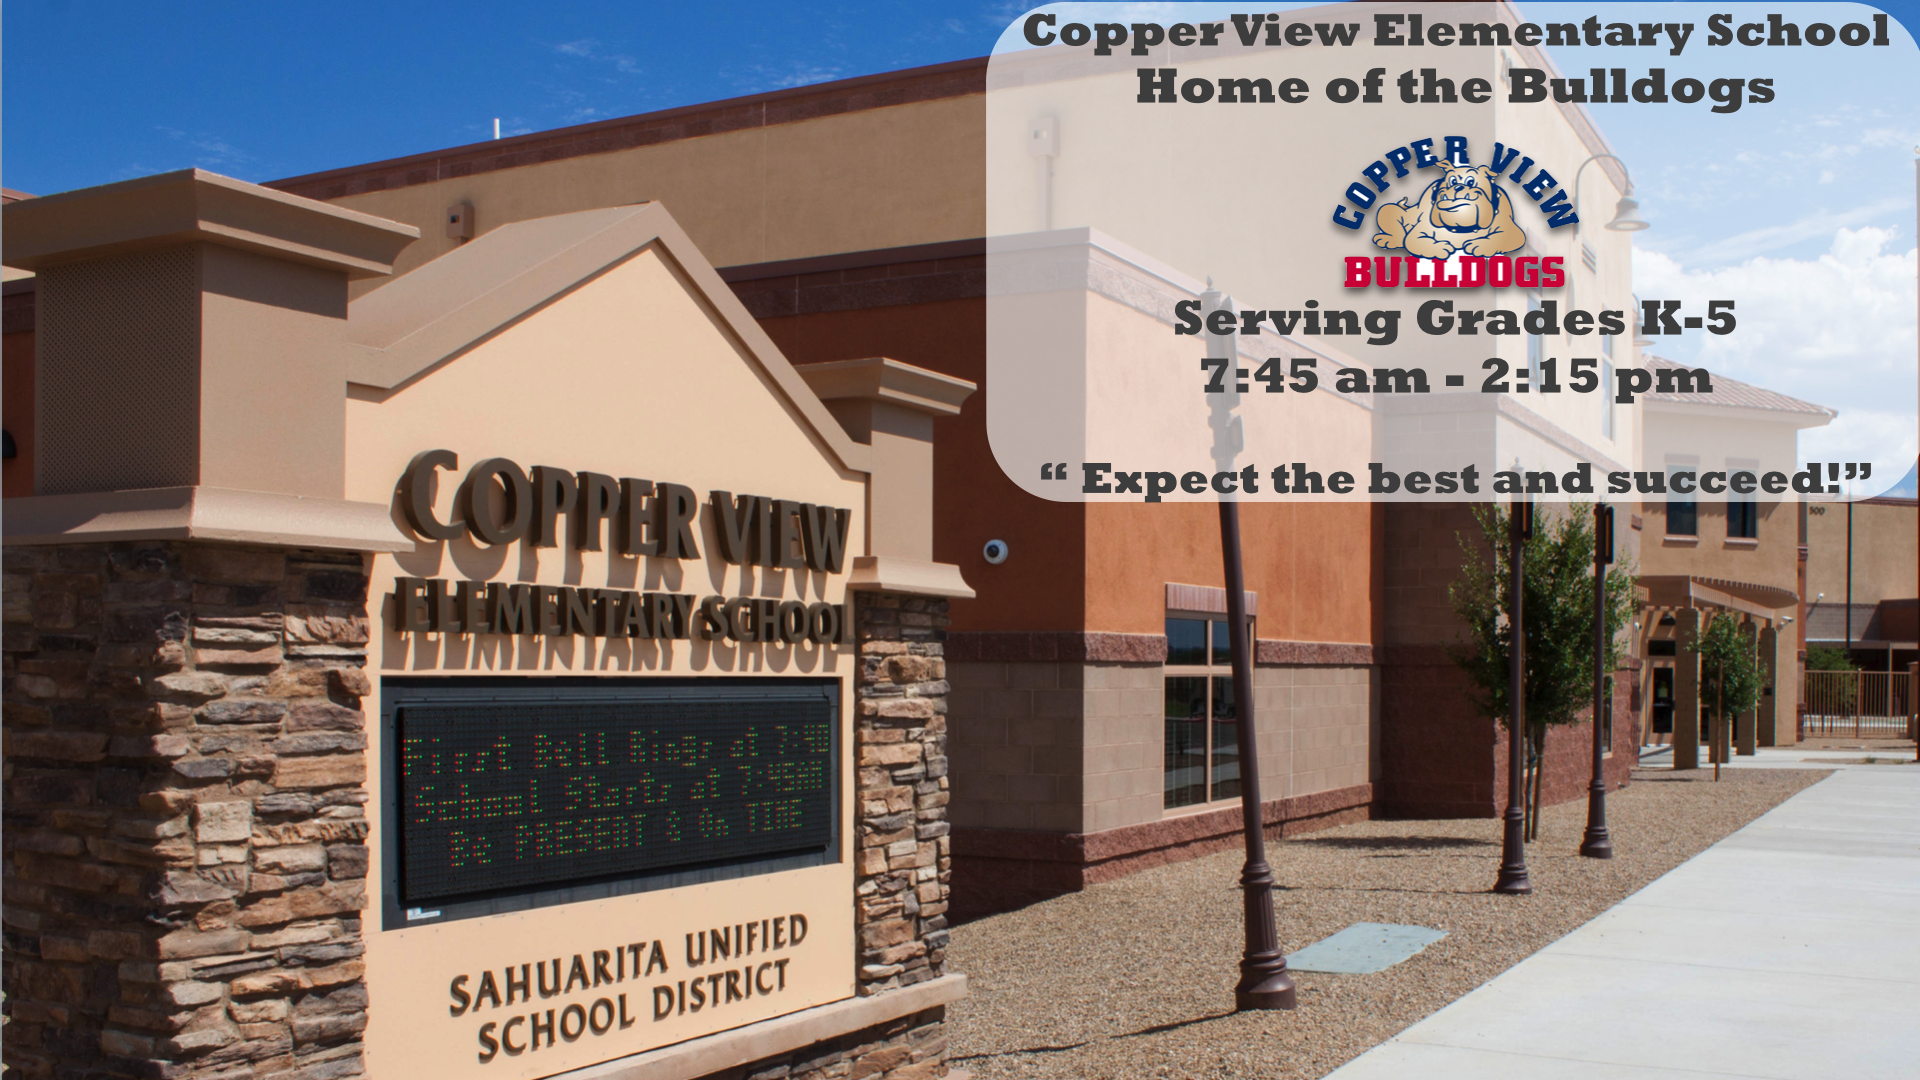 Copper View Elementary School